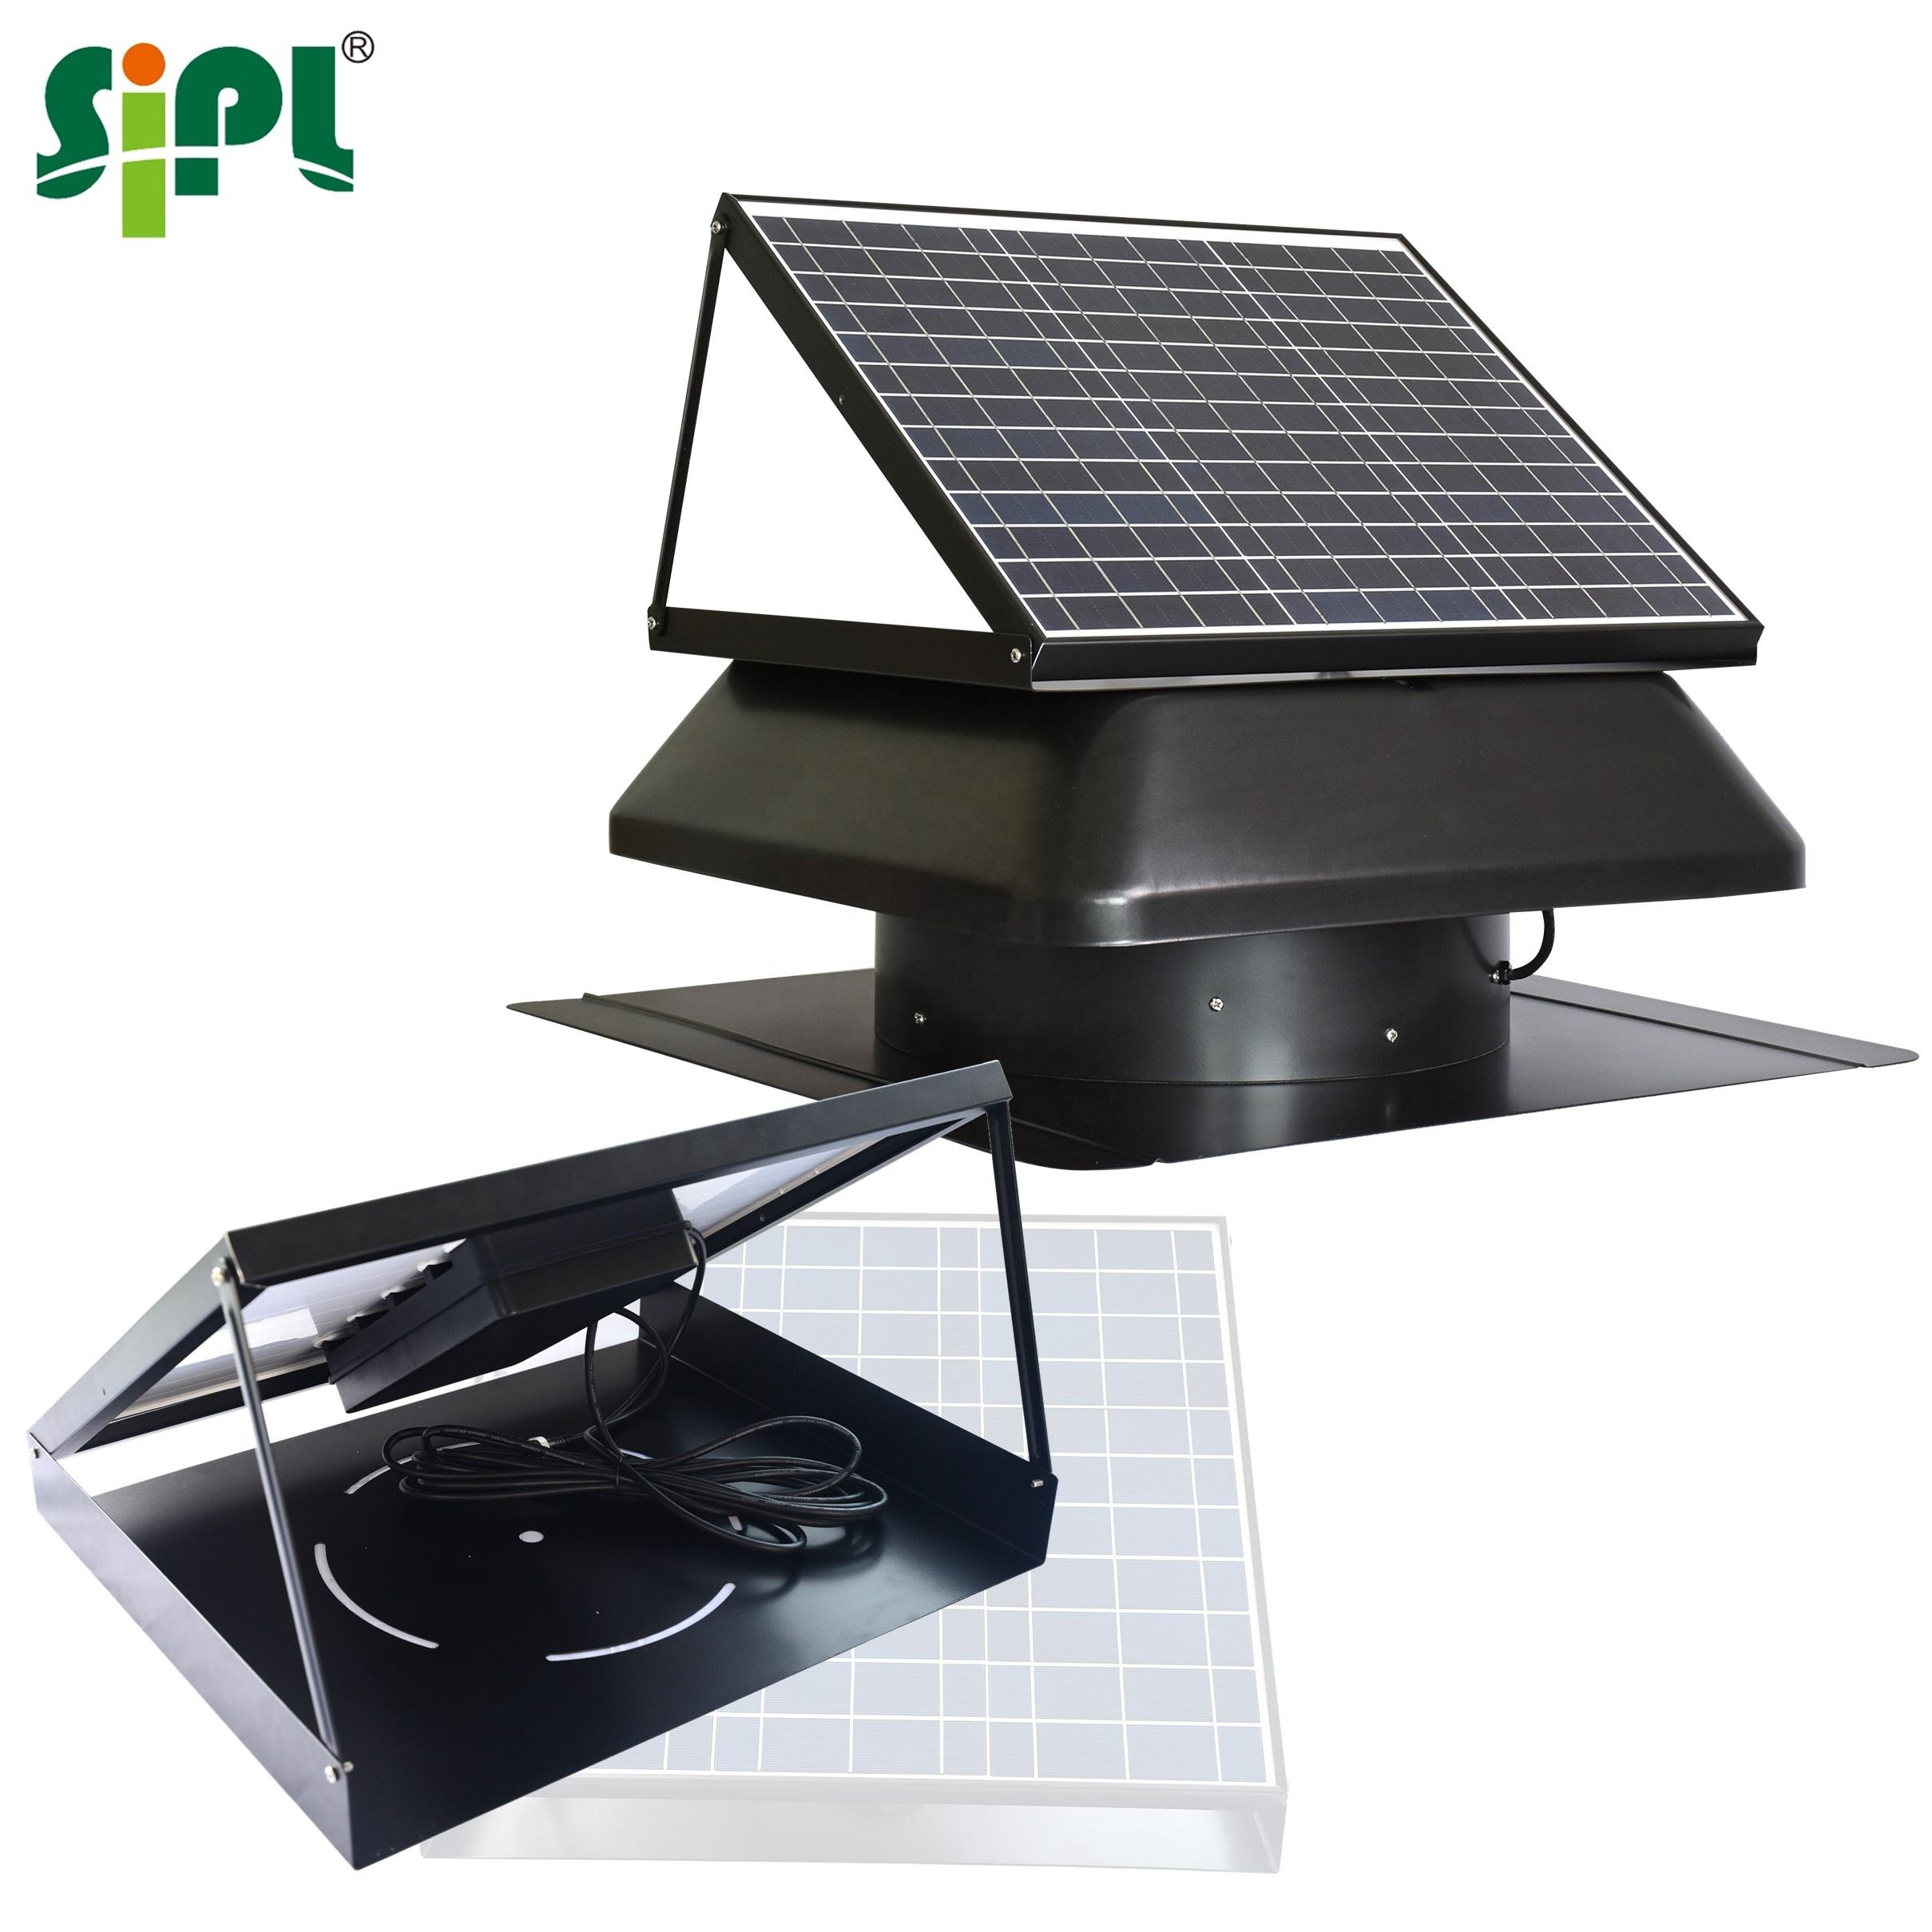 Roof Top Fire Resistant Air Conditioner Industrial Heat Exhaust Tooling Solar Panel Battery Vent DC Air Ventilation Attic Fan